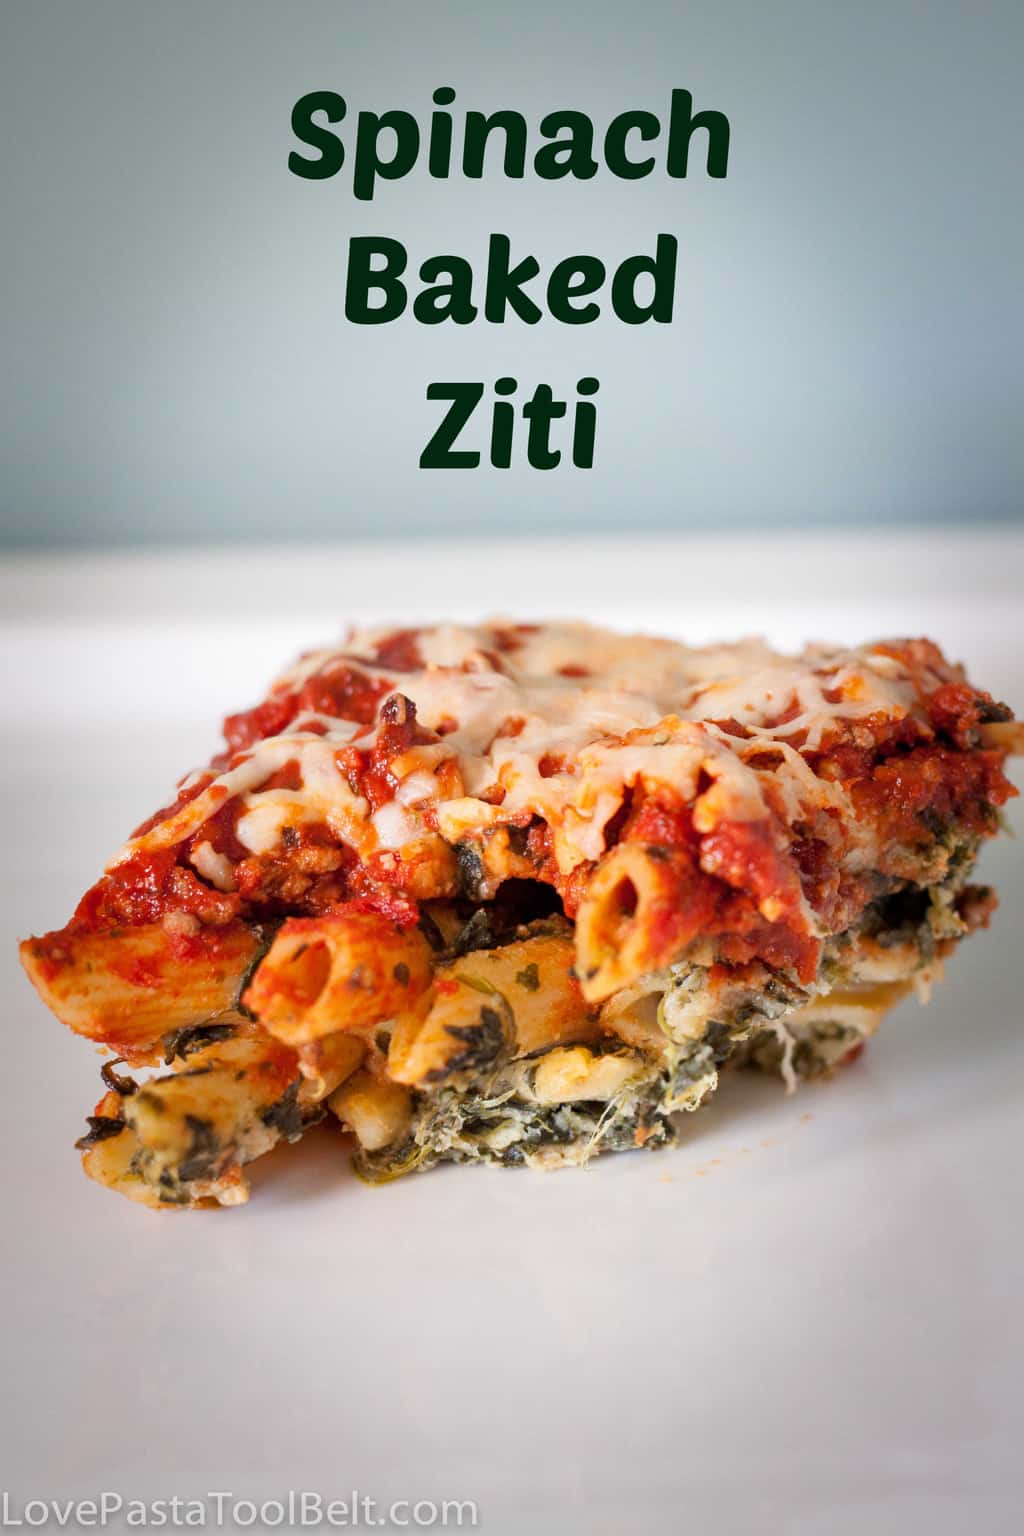 Spinach Baked Ziti - Love, Pasta, and a Tool Belt